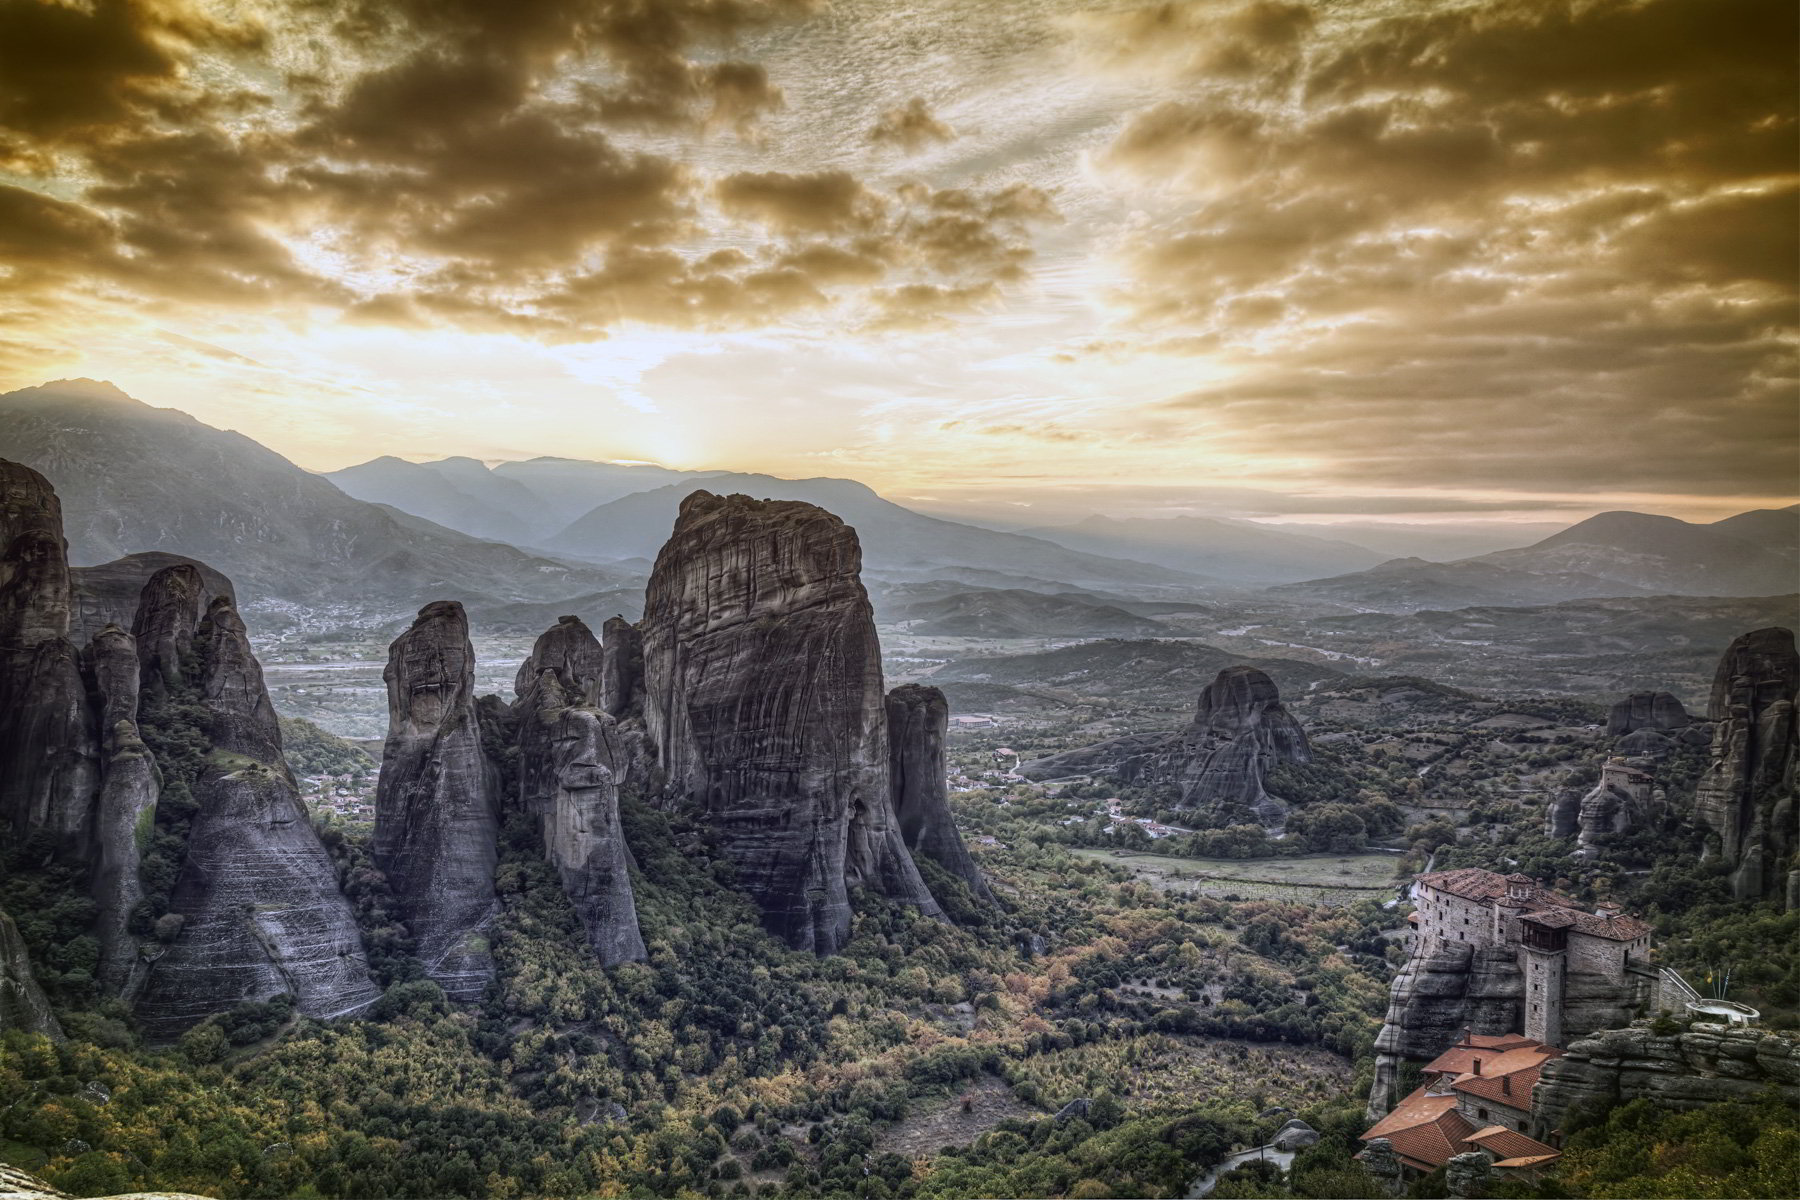 Holidays in Meteora Monastic eyries Discover Greece 1800x1200